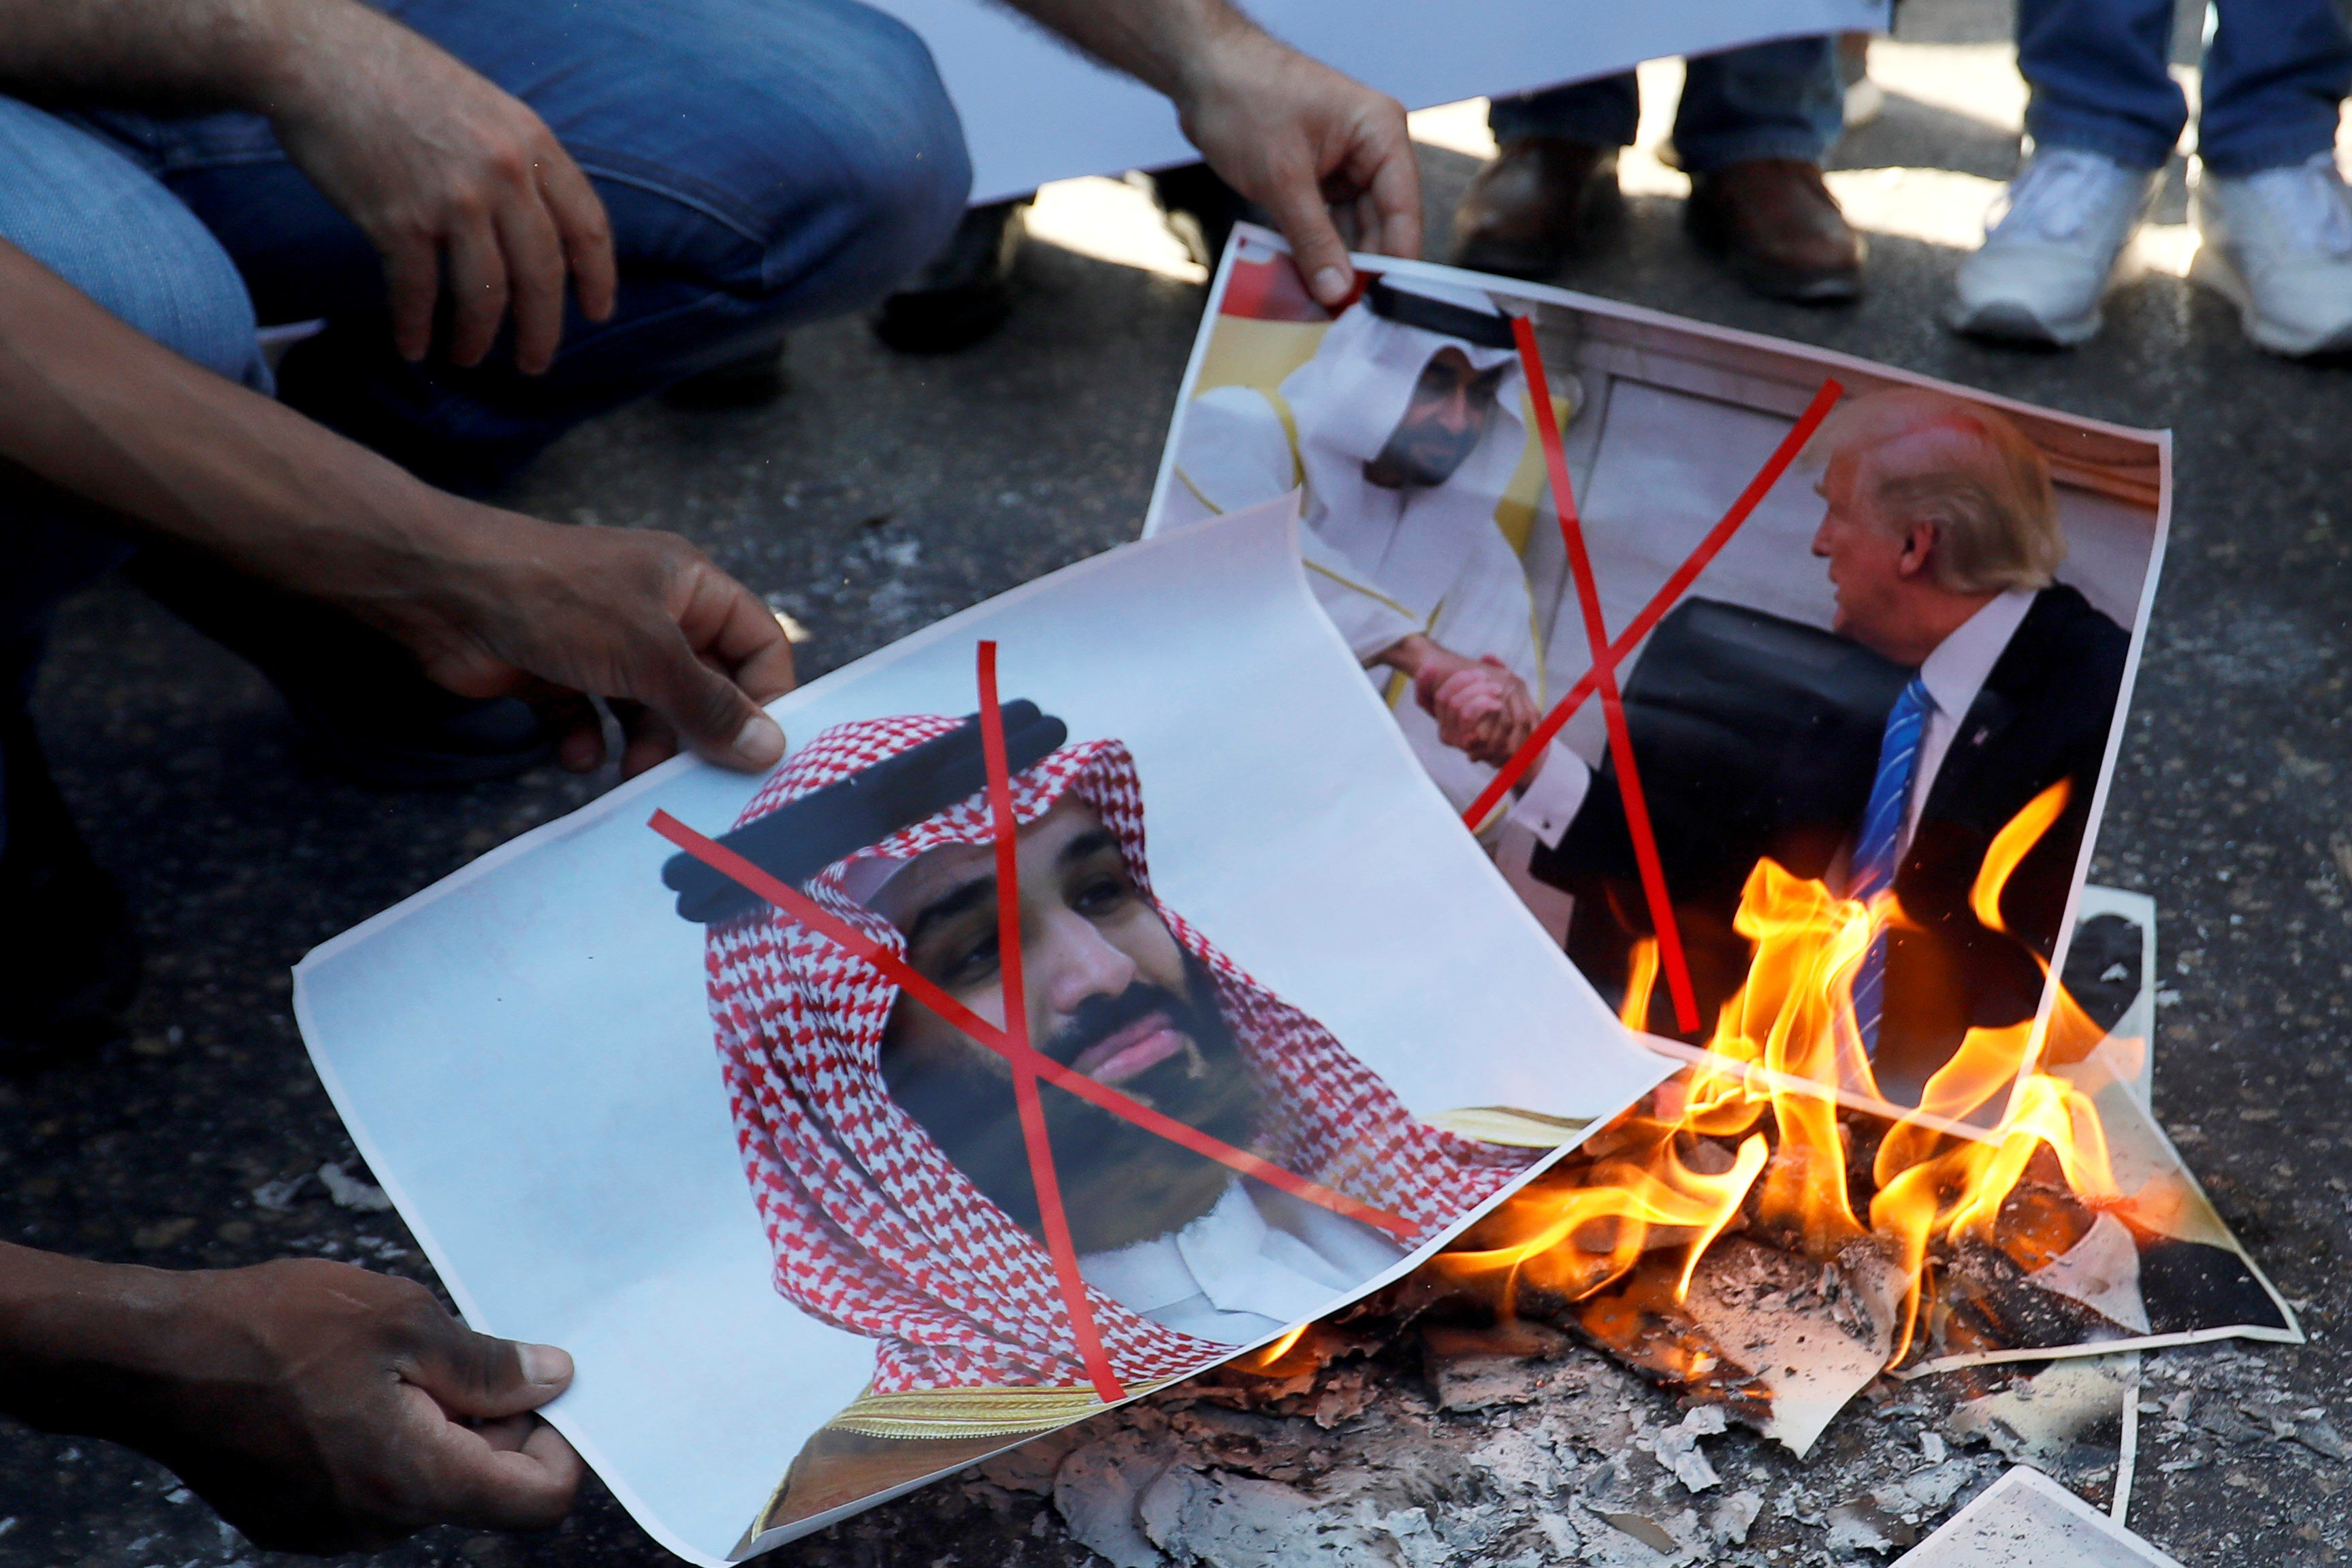 Palestinians burn pictures depicting US President, Abu Dhabi Crown Prince and Saudi Arabia's Crown Prince during a protest against the UAE deal with Israel in Ramallah on 15 August (Reuters)